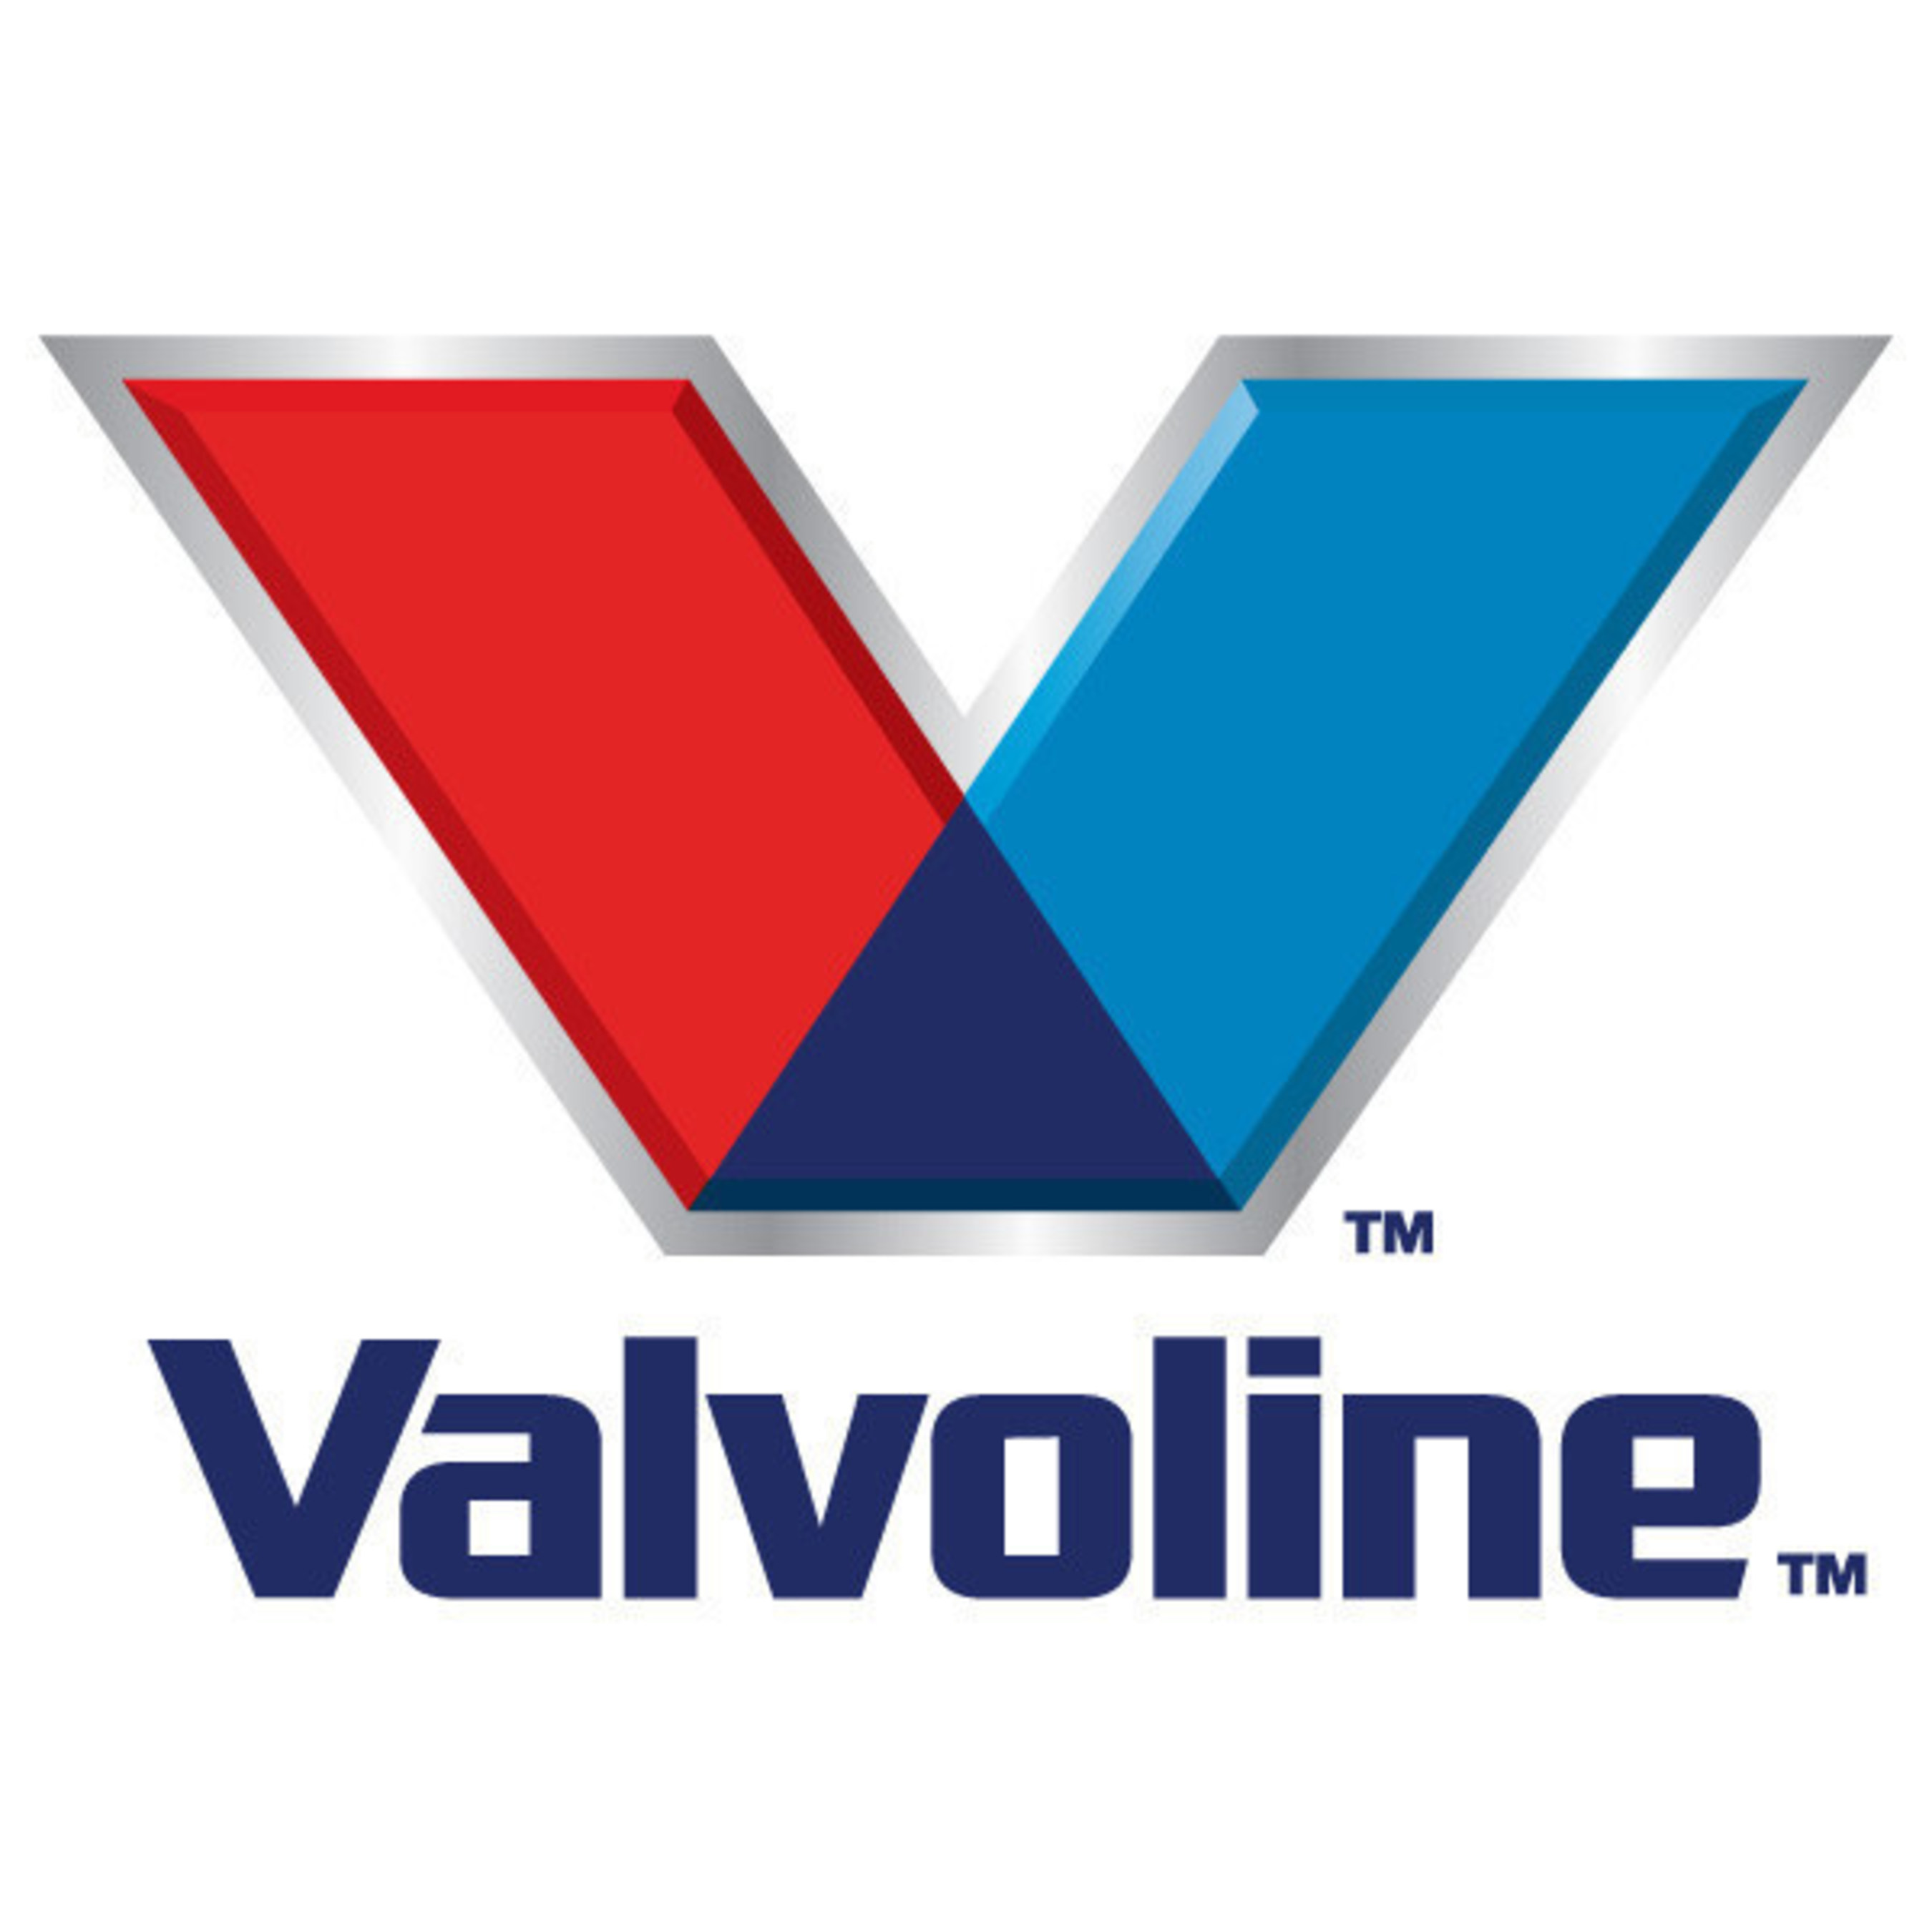 Valvoline(TM) to Construct Two Stock-Full Class Trucks for Baja 1000 Competition